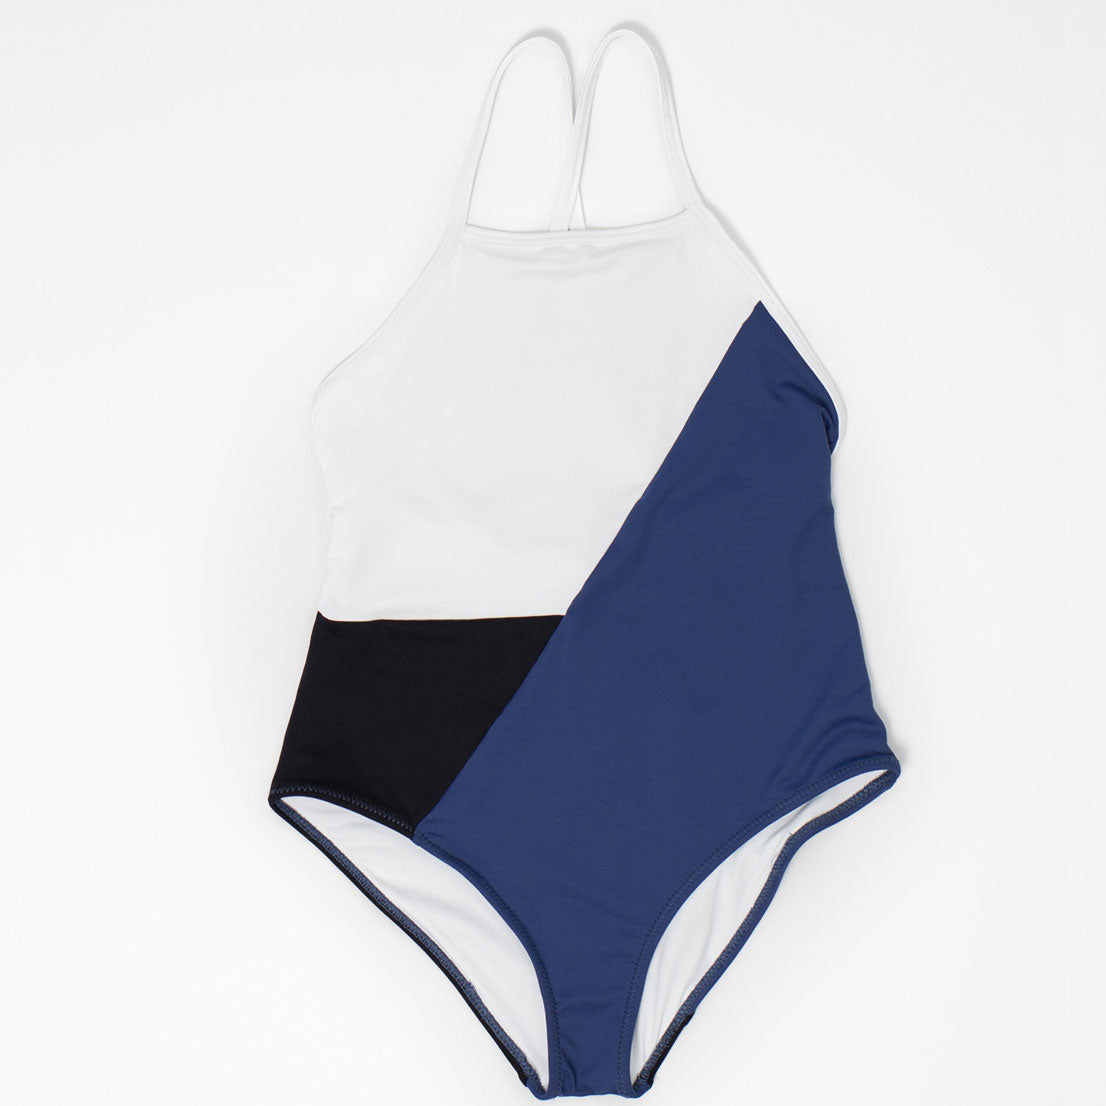 Color-block Swimsuit, Blue, Black & White